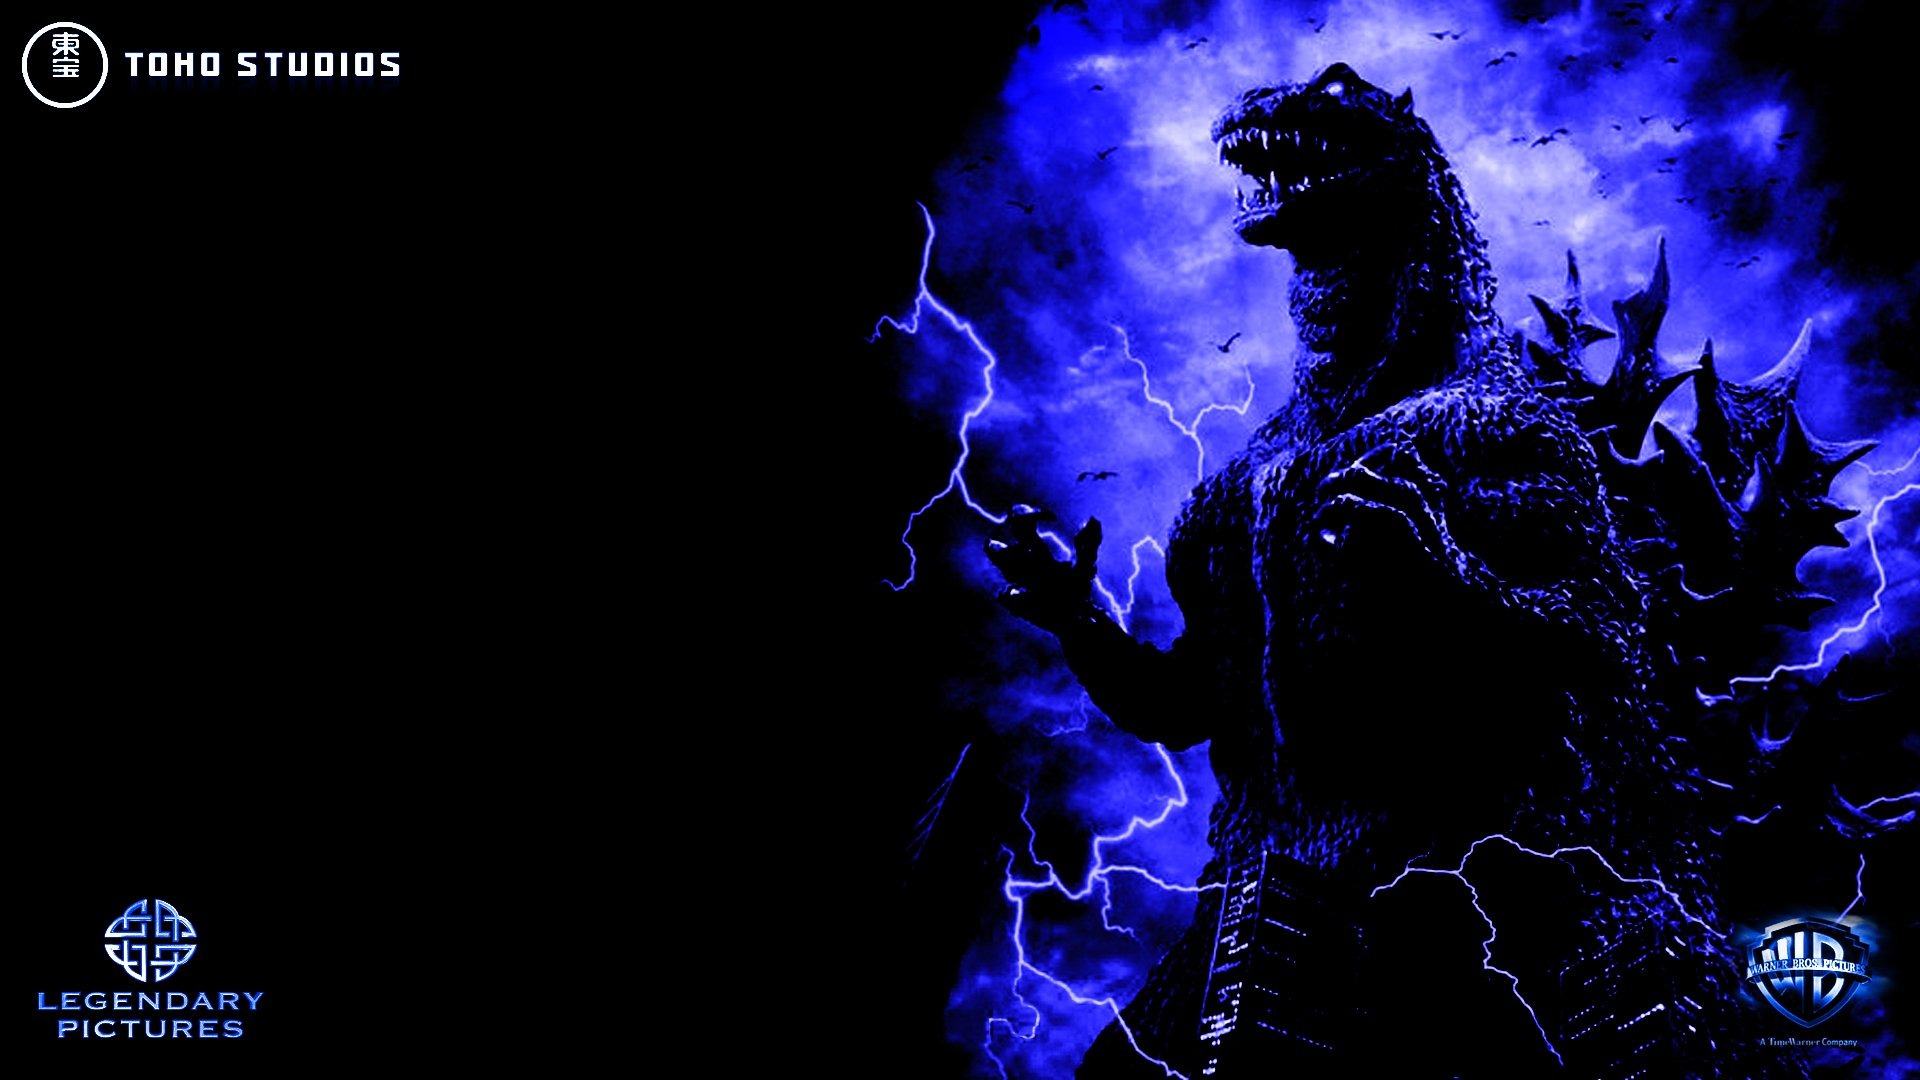 Legendary Pictures Godzilla by SeanSumagaysay 1920x1080